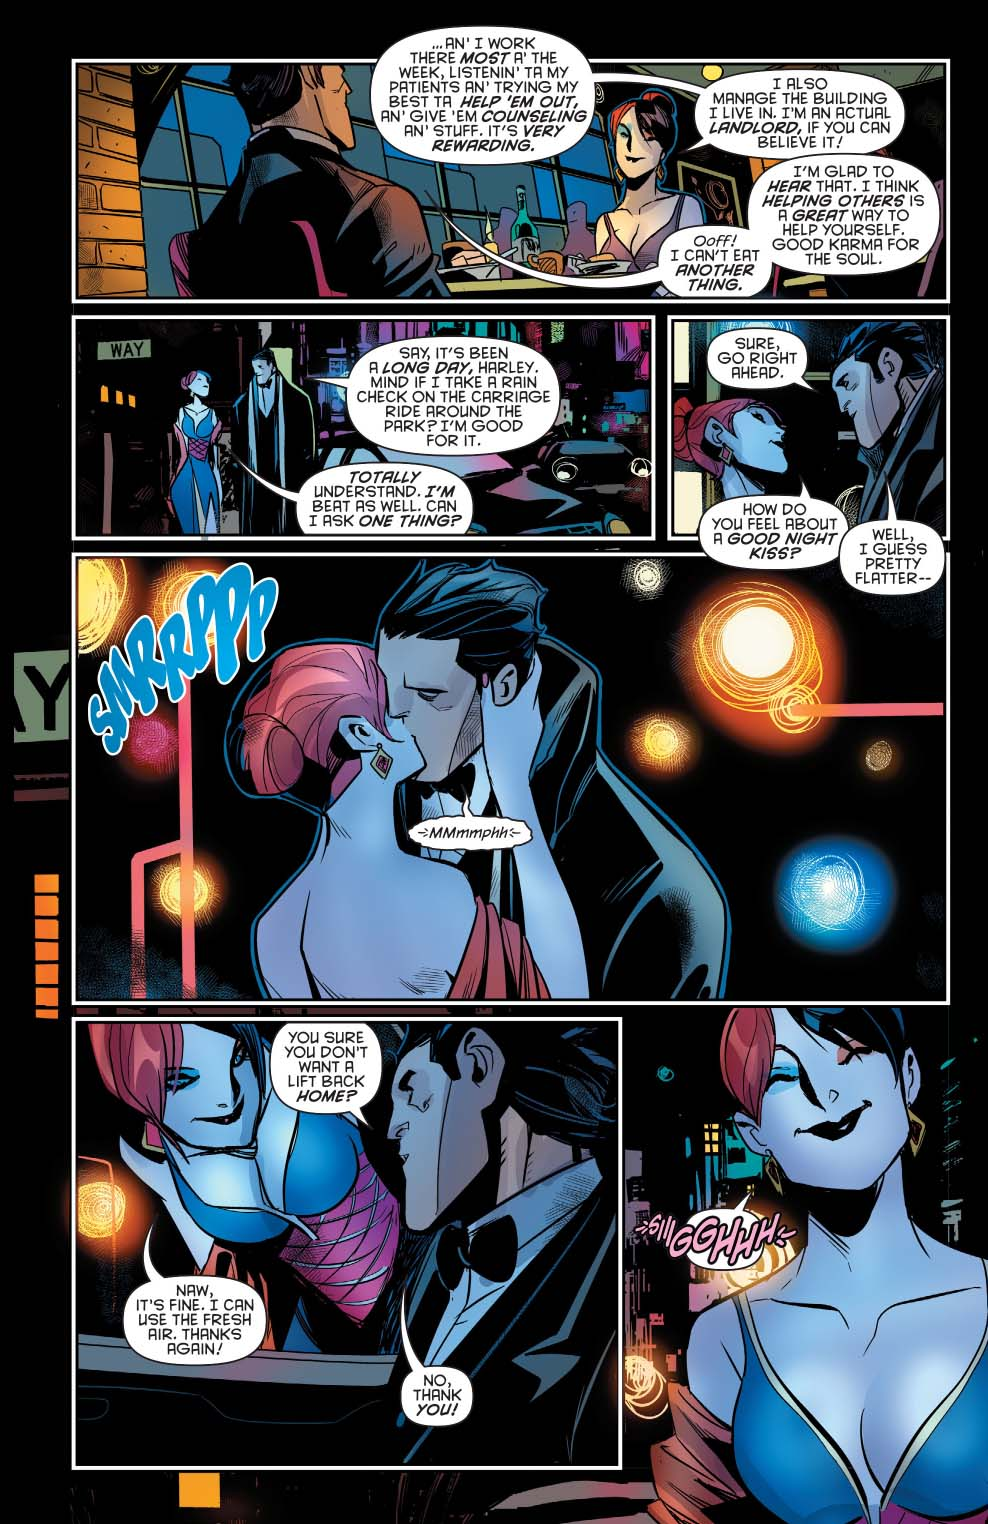 Bruce Wayne Goes On A Date With Harley Quinn  Comicnewbies-2872